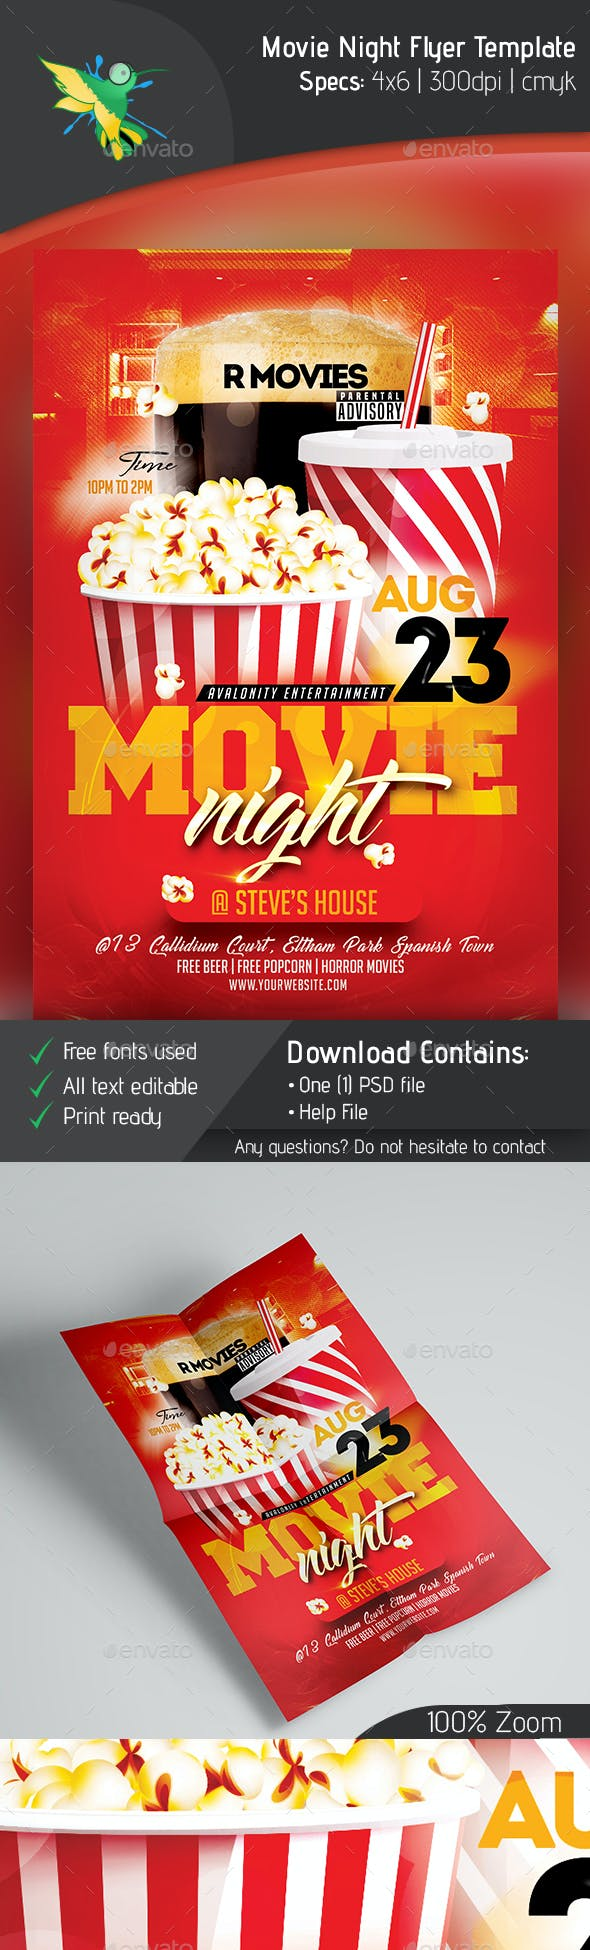 movie night flyer template by avalonity graphicriver